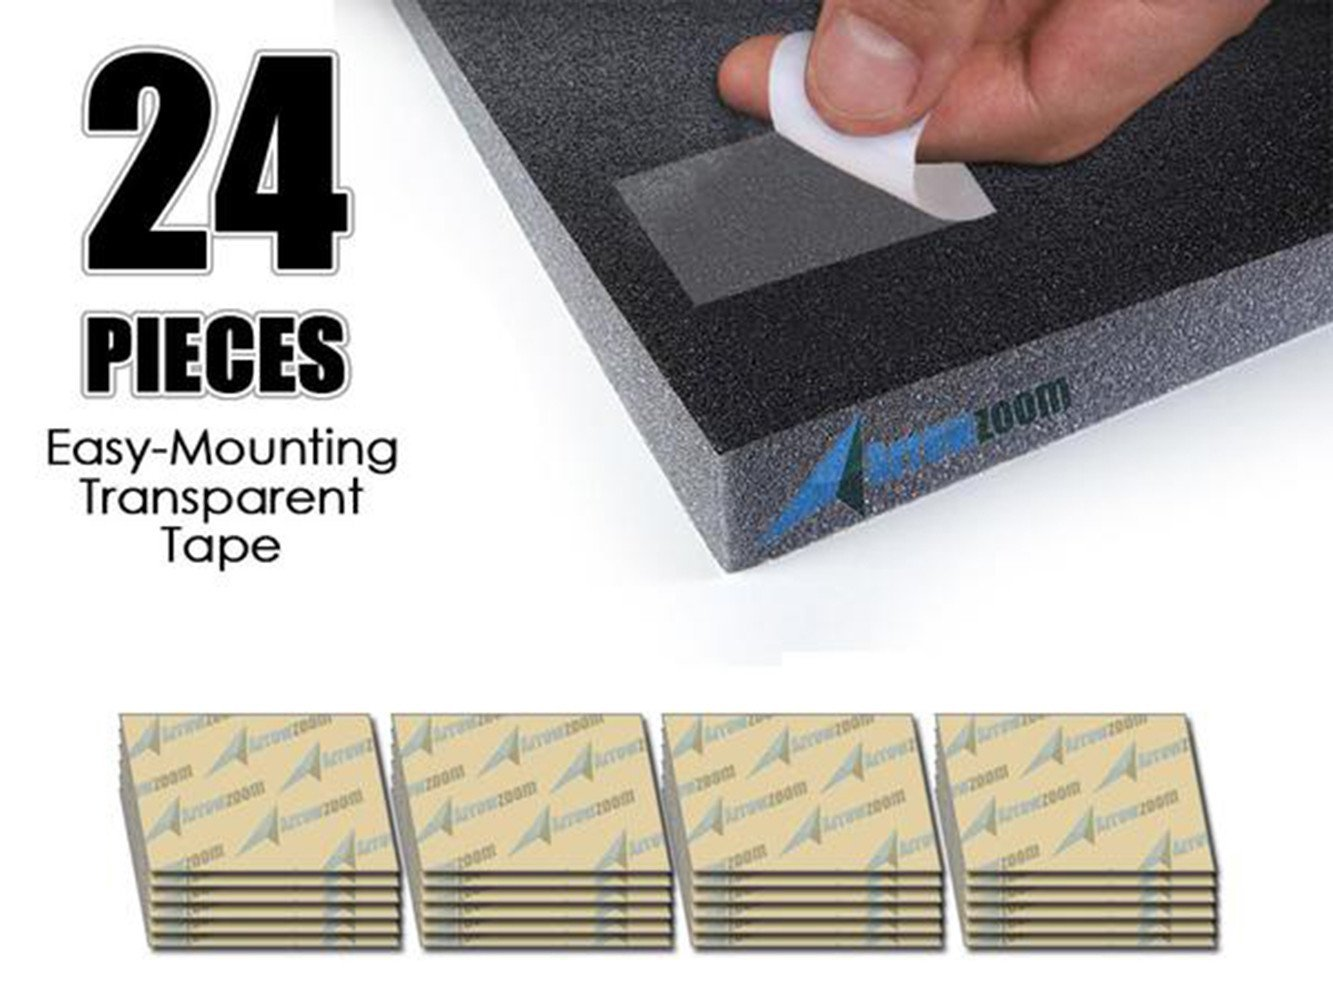 Arrowzoom New 24 Pieces Easy Transparent Wall Double Sided Adhesive Mounting Sticky Tabs/Tapes